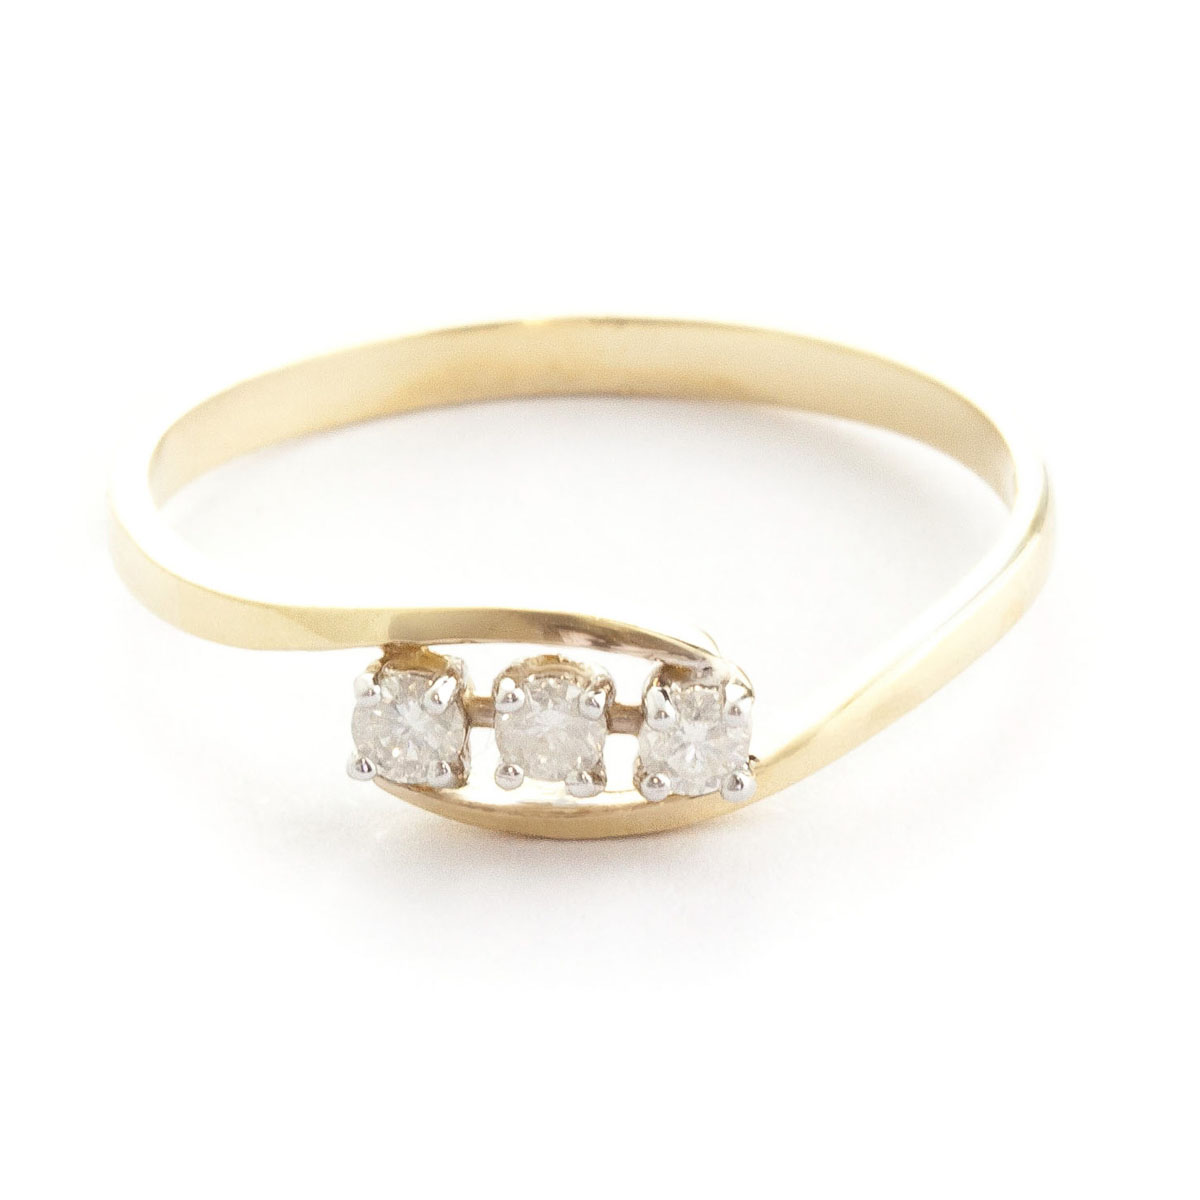 Round Cut Diamond Ring 0.15 ctw in 9ct Gold